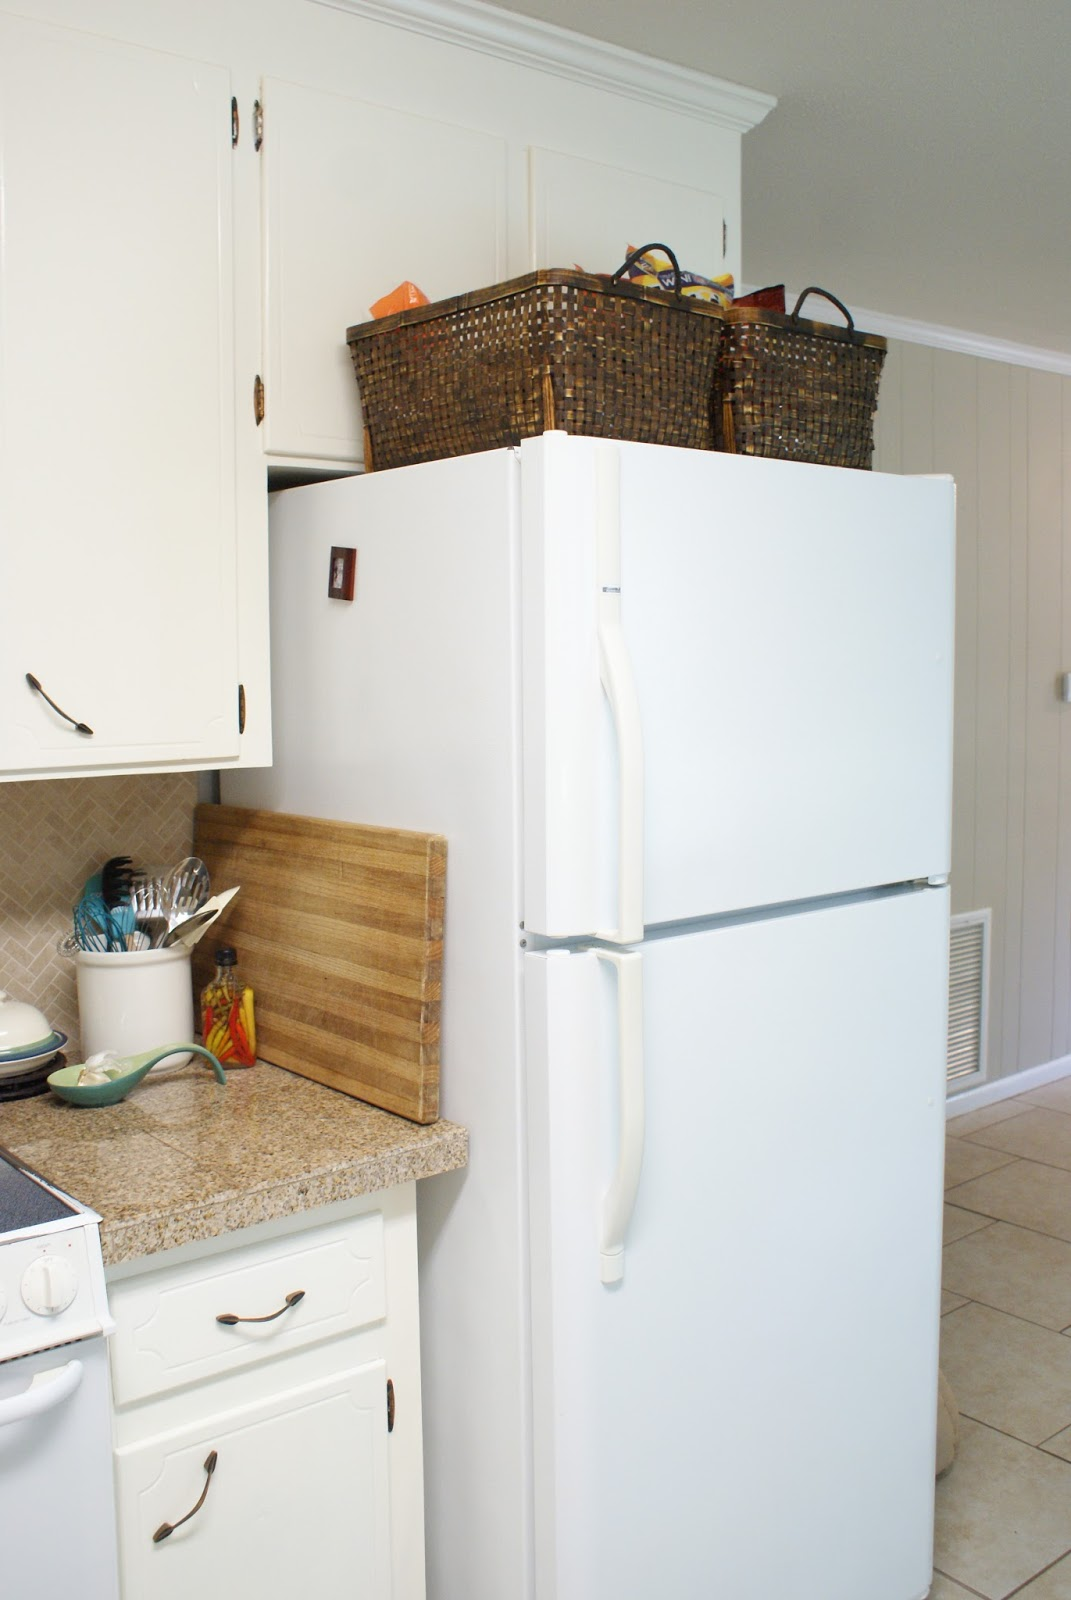 Carry grace quick tip tuesday use baskets on your fridge to i just placed some large baskets on top of the fridge to hold these items one for all the chips and one for all the bread tortillas and bagels publicscrutiny Choice Image